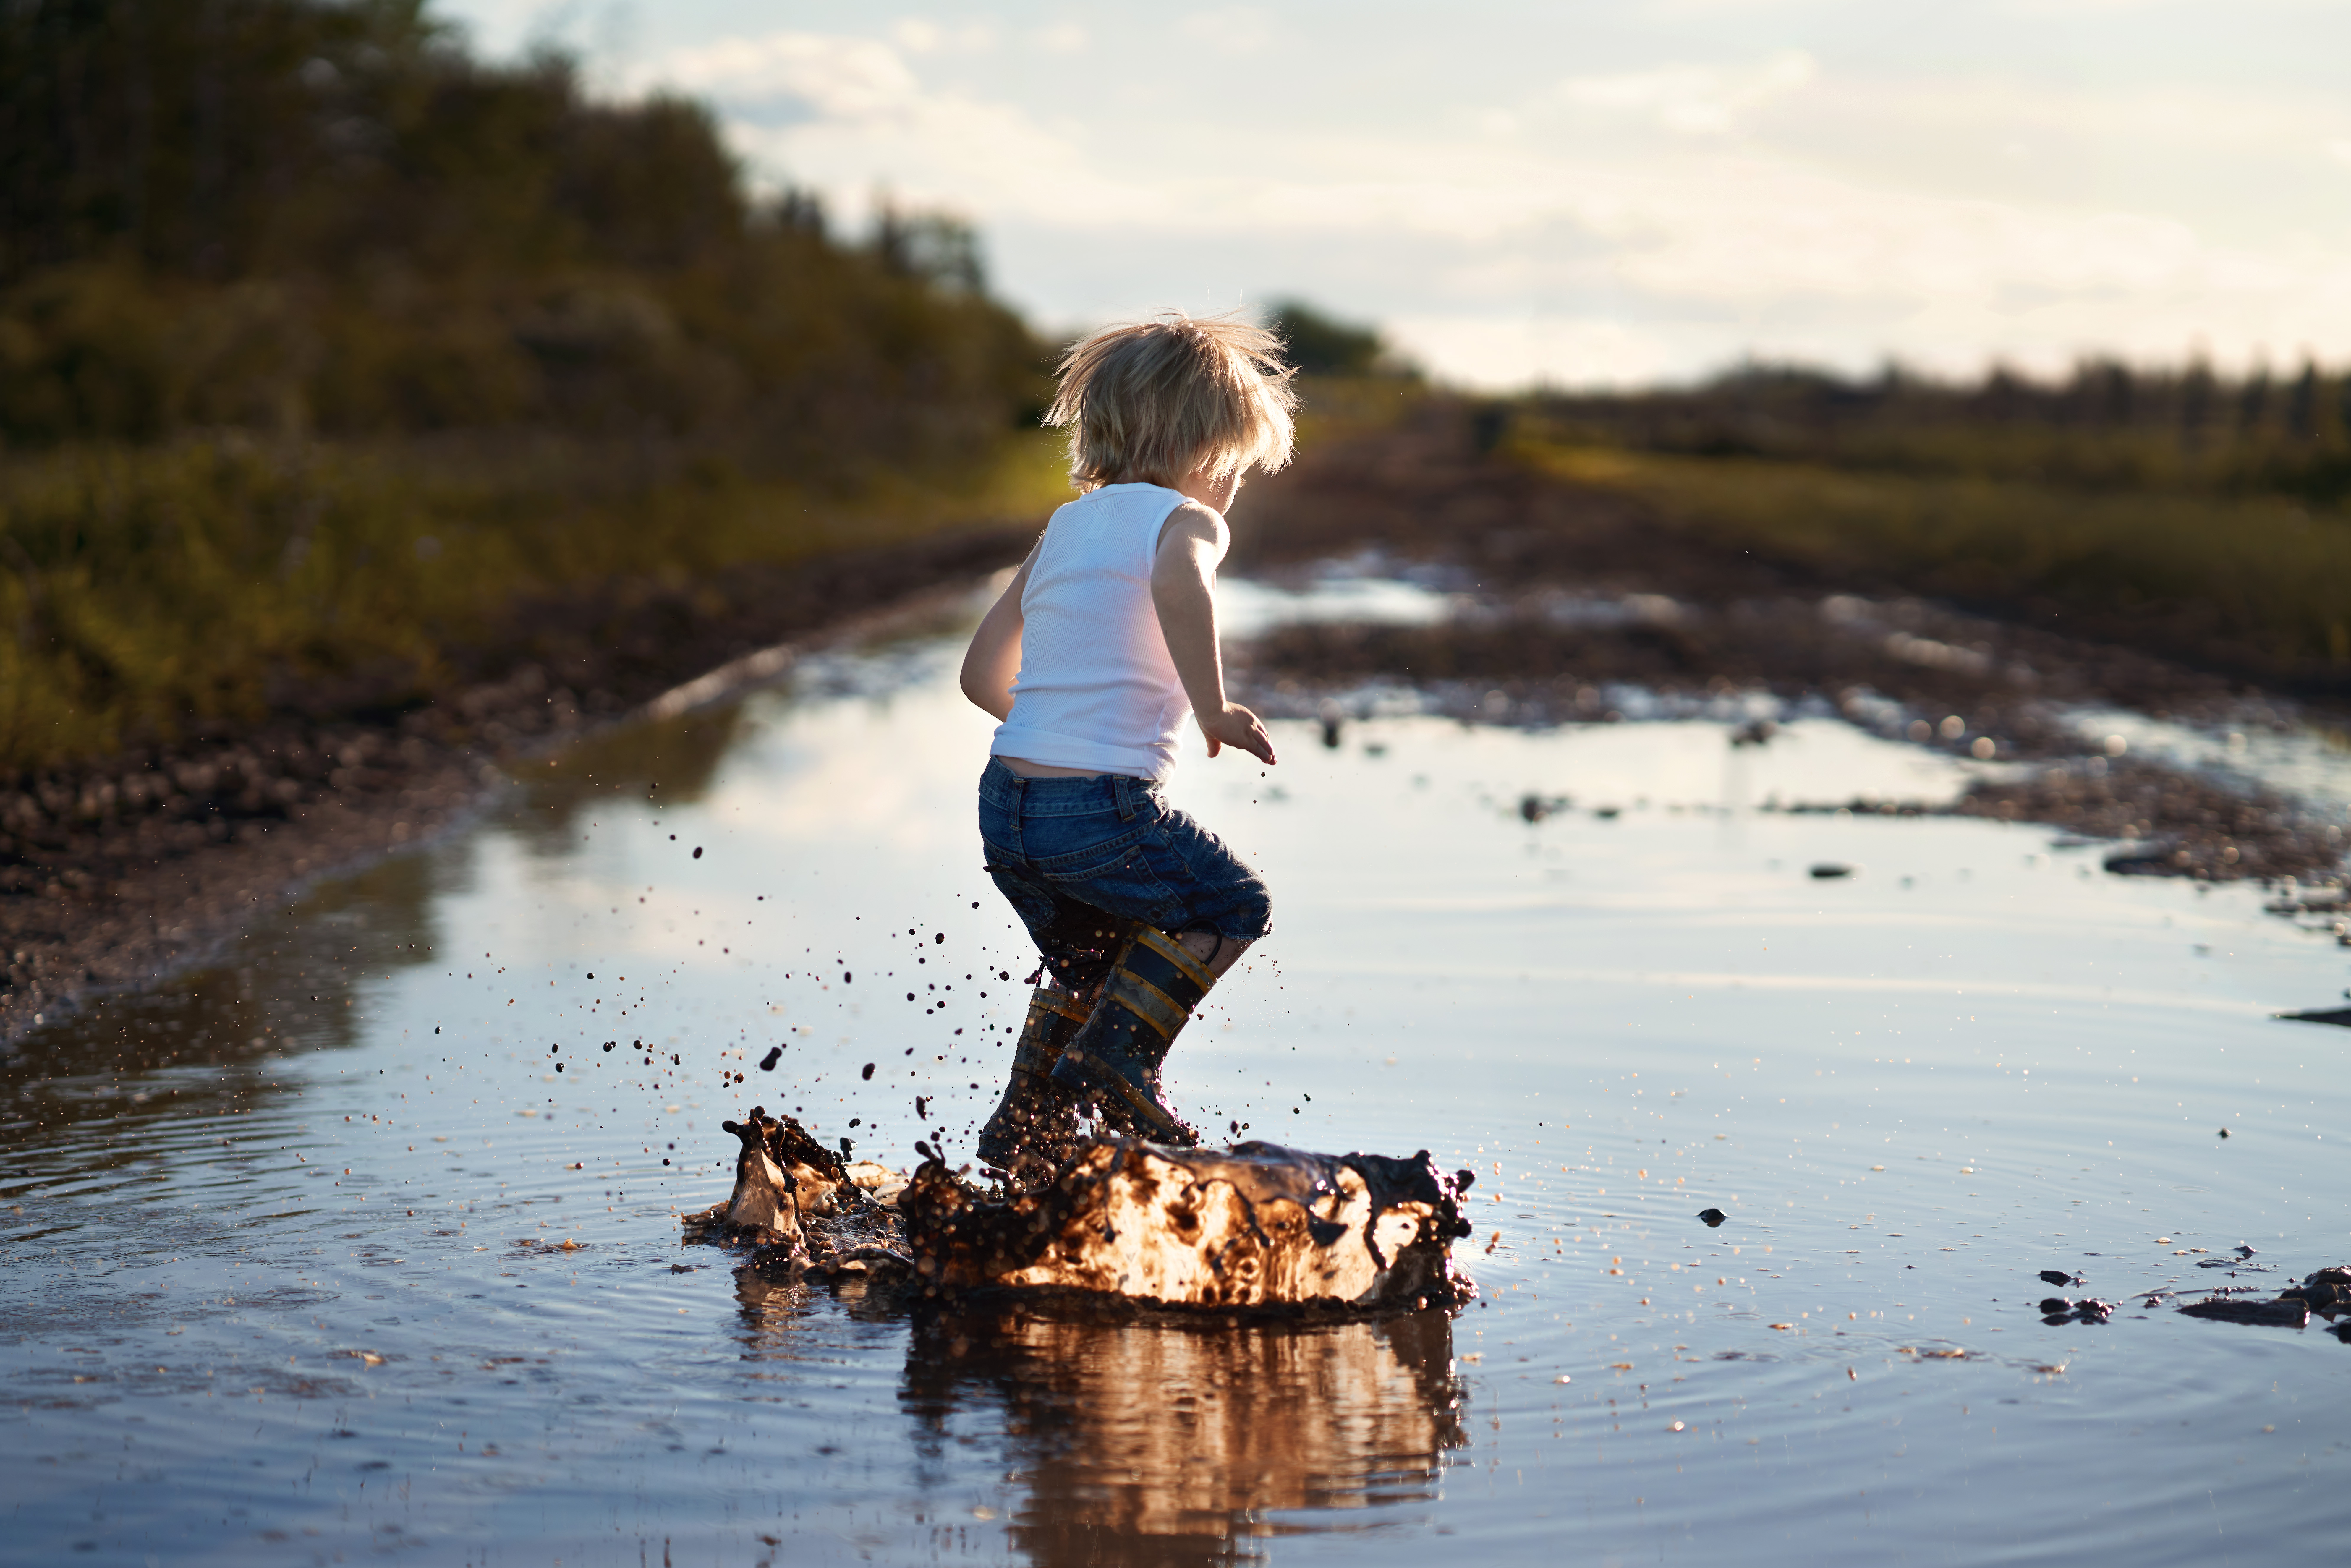 Photo of kid jumping in a puddle